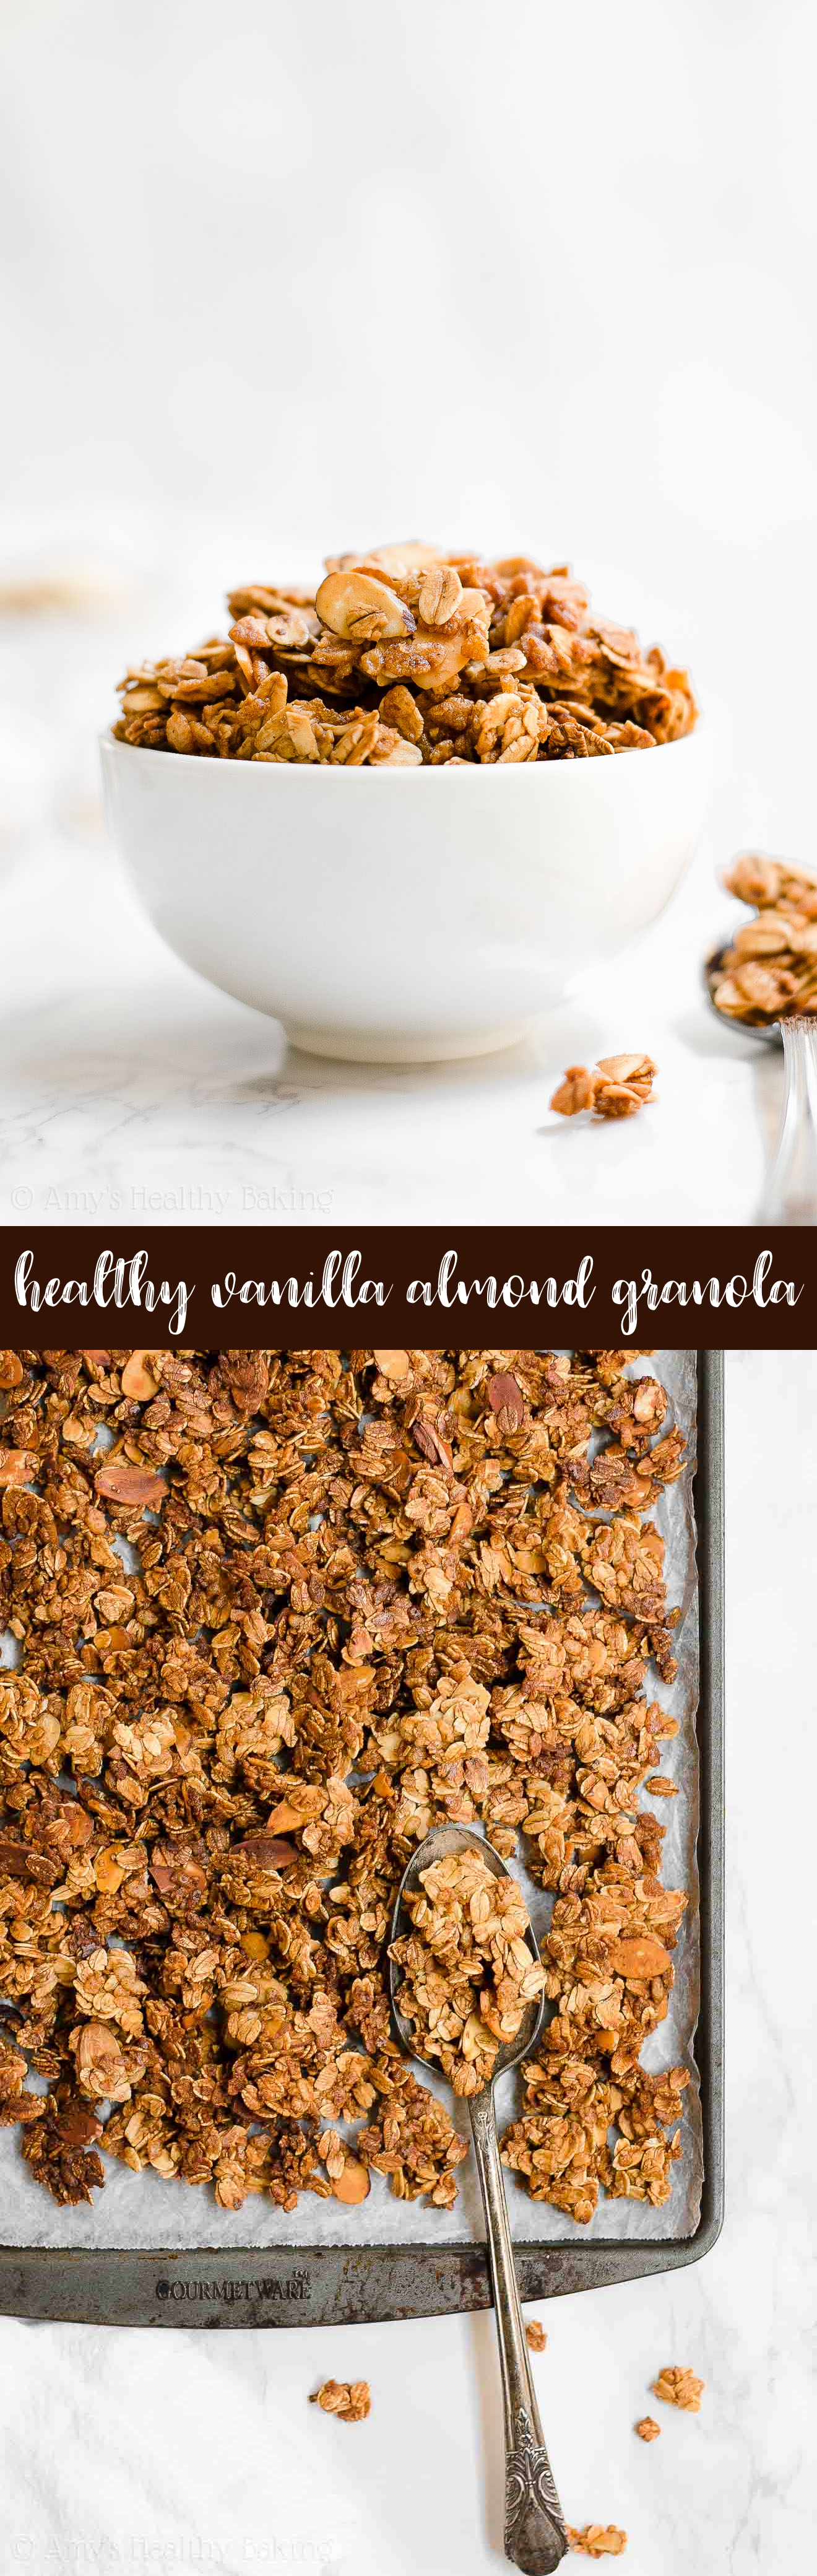 Best Ever Healthy Homemade Crunchy Vanilla Almond Granola